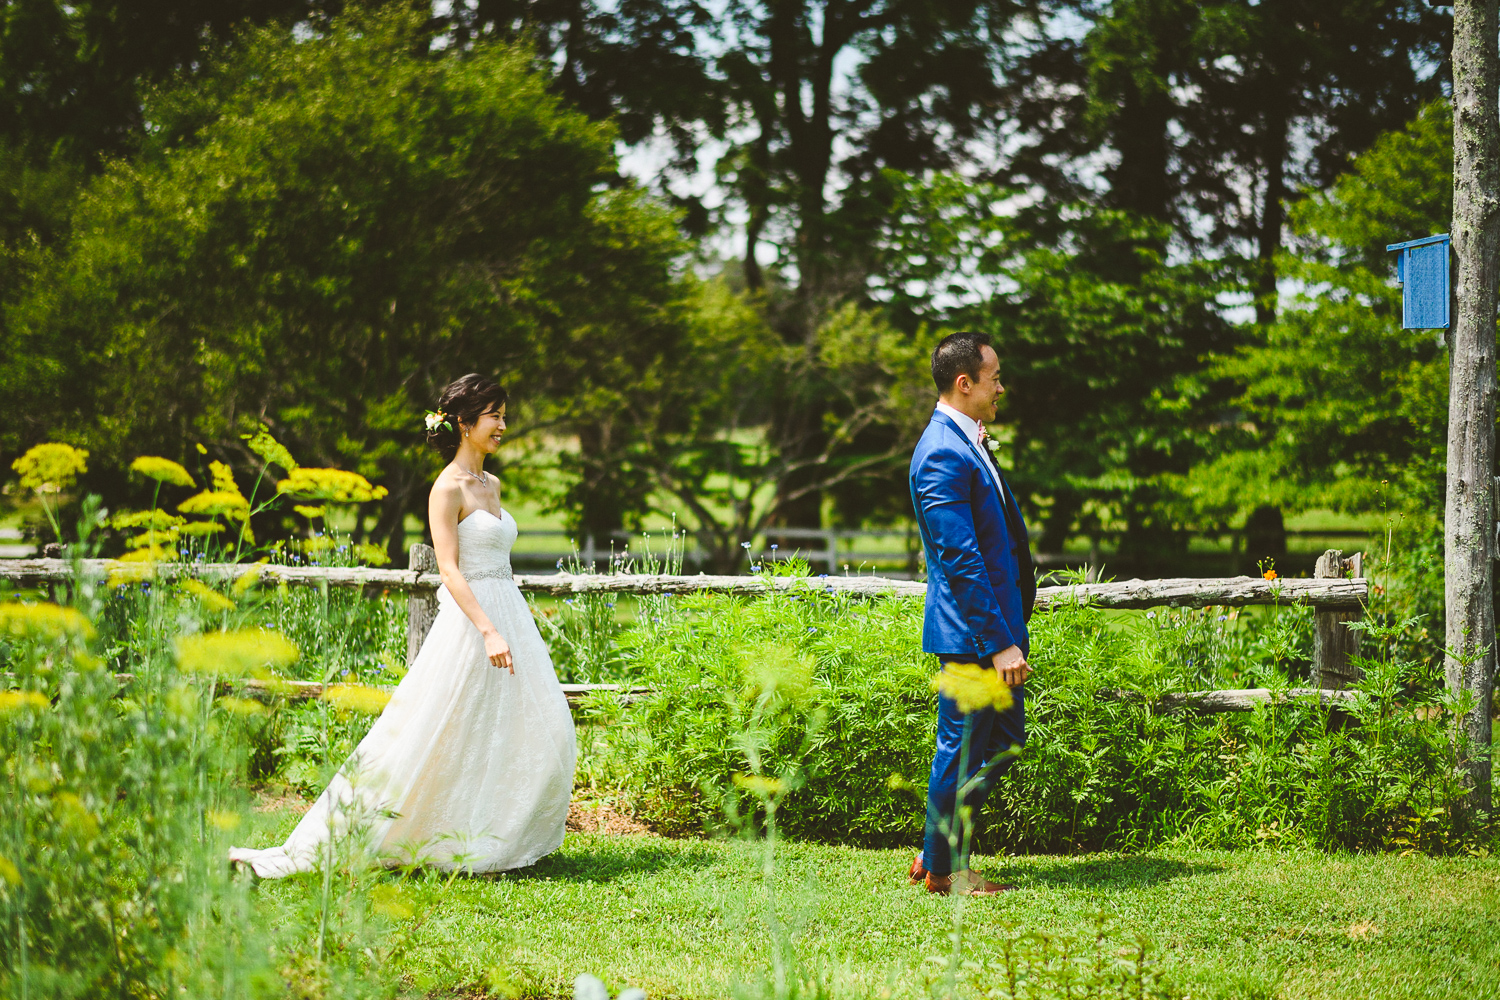 012 - first look tuckahoe plantation virginia wedding.jpg